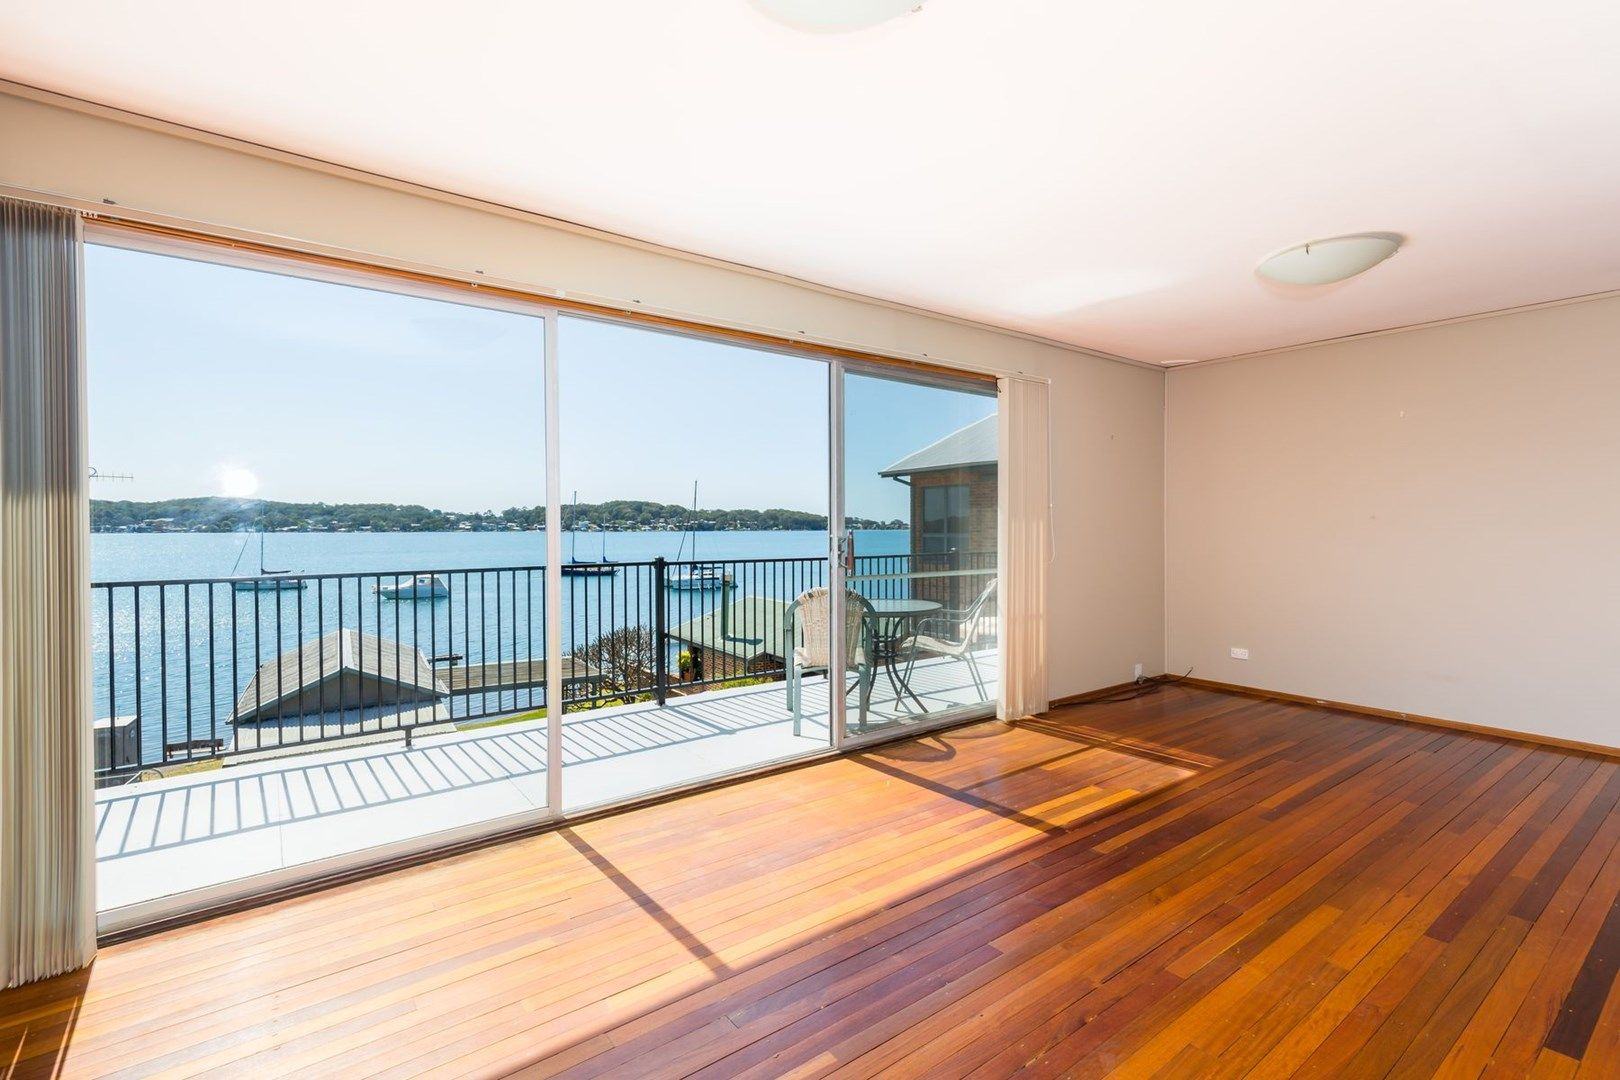 105 Fishing Point Road, Fishing Point NSW 2283, Image 0